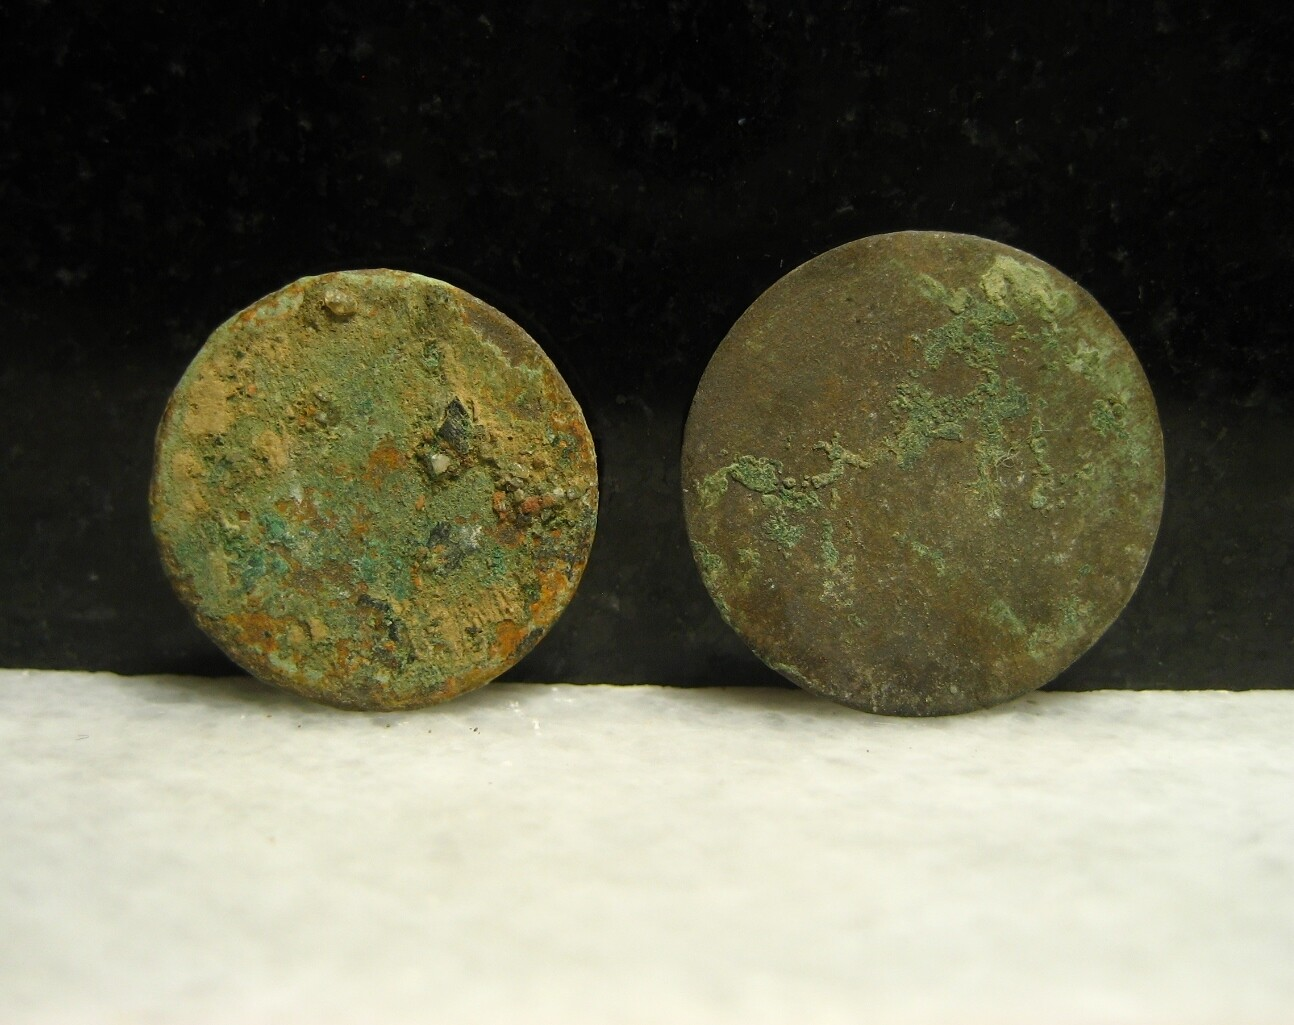 JUST ADDED ON 9/5 - DUNKER CHURCH / THE BATTLE OF ANTIETAM - Two Flat or Coin Coat Buttons